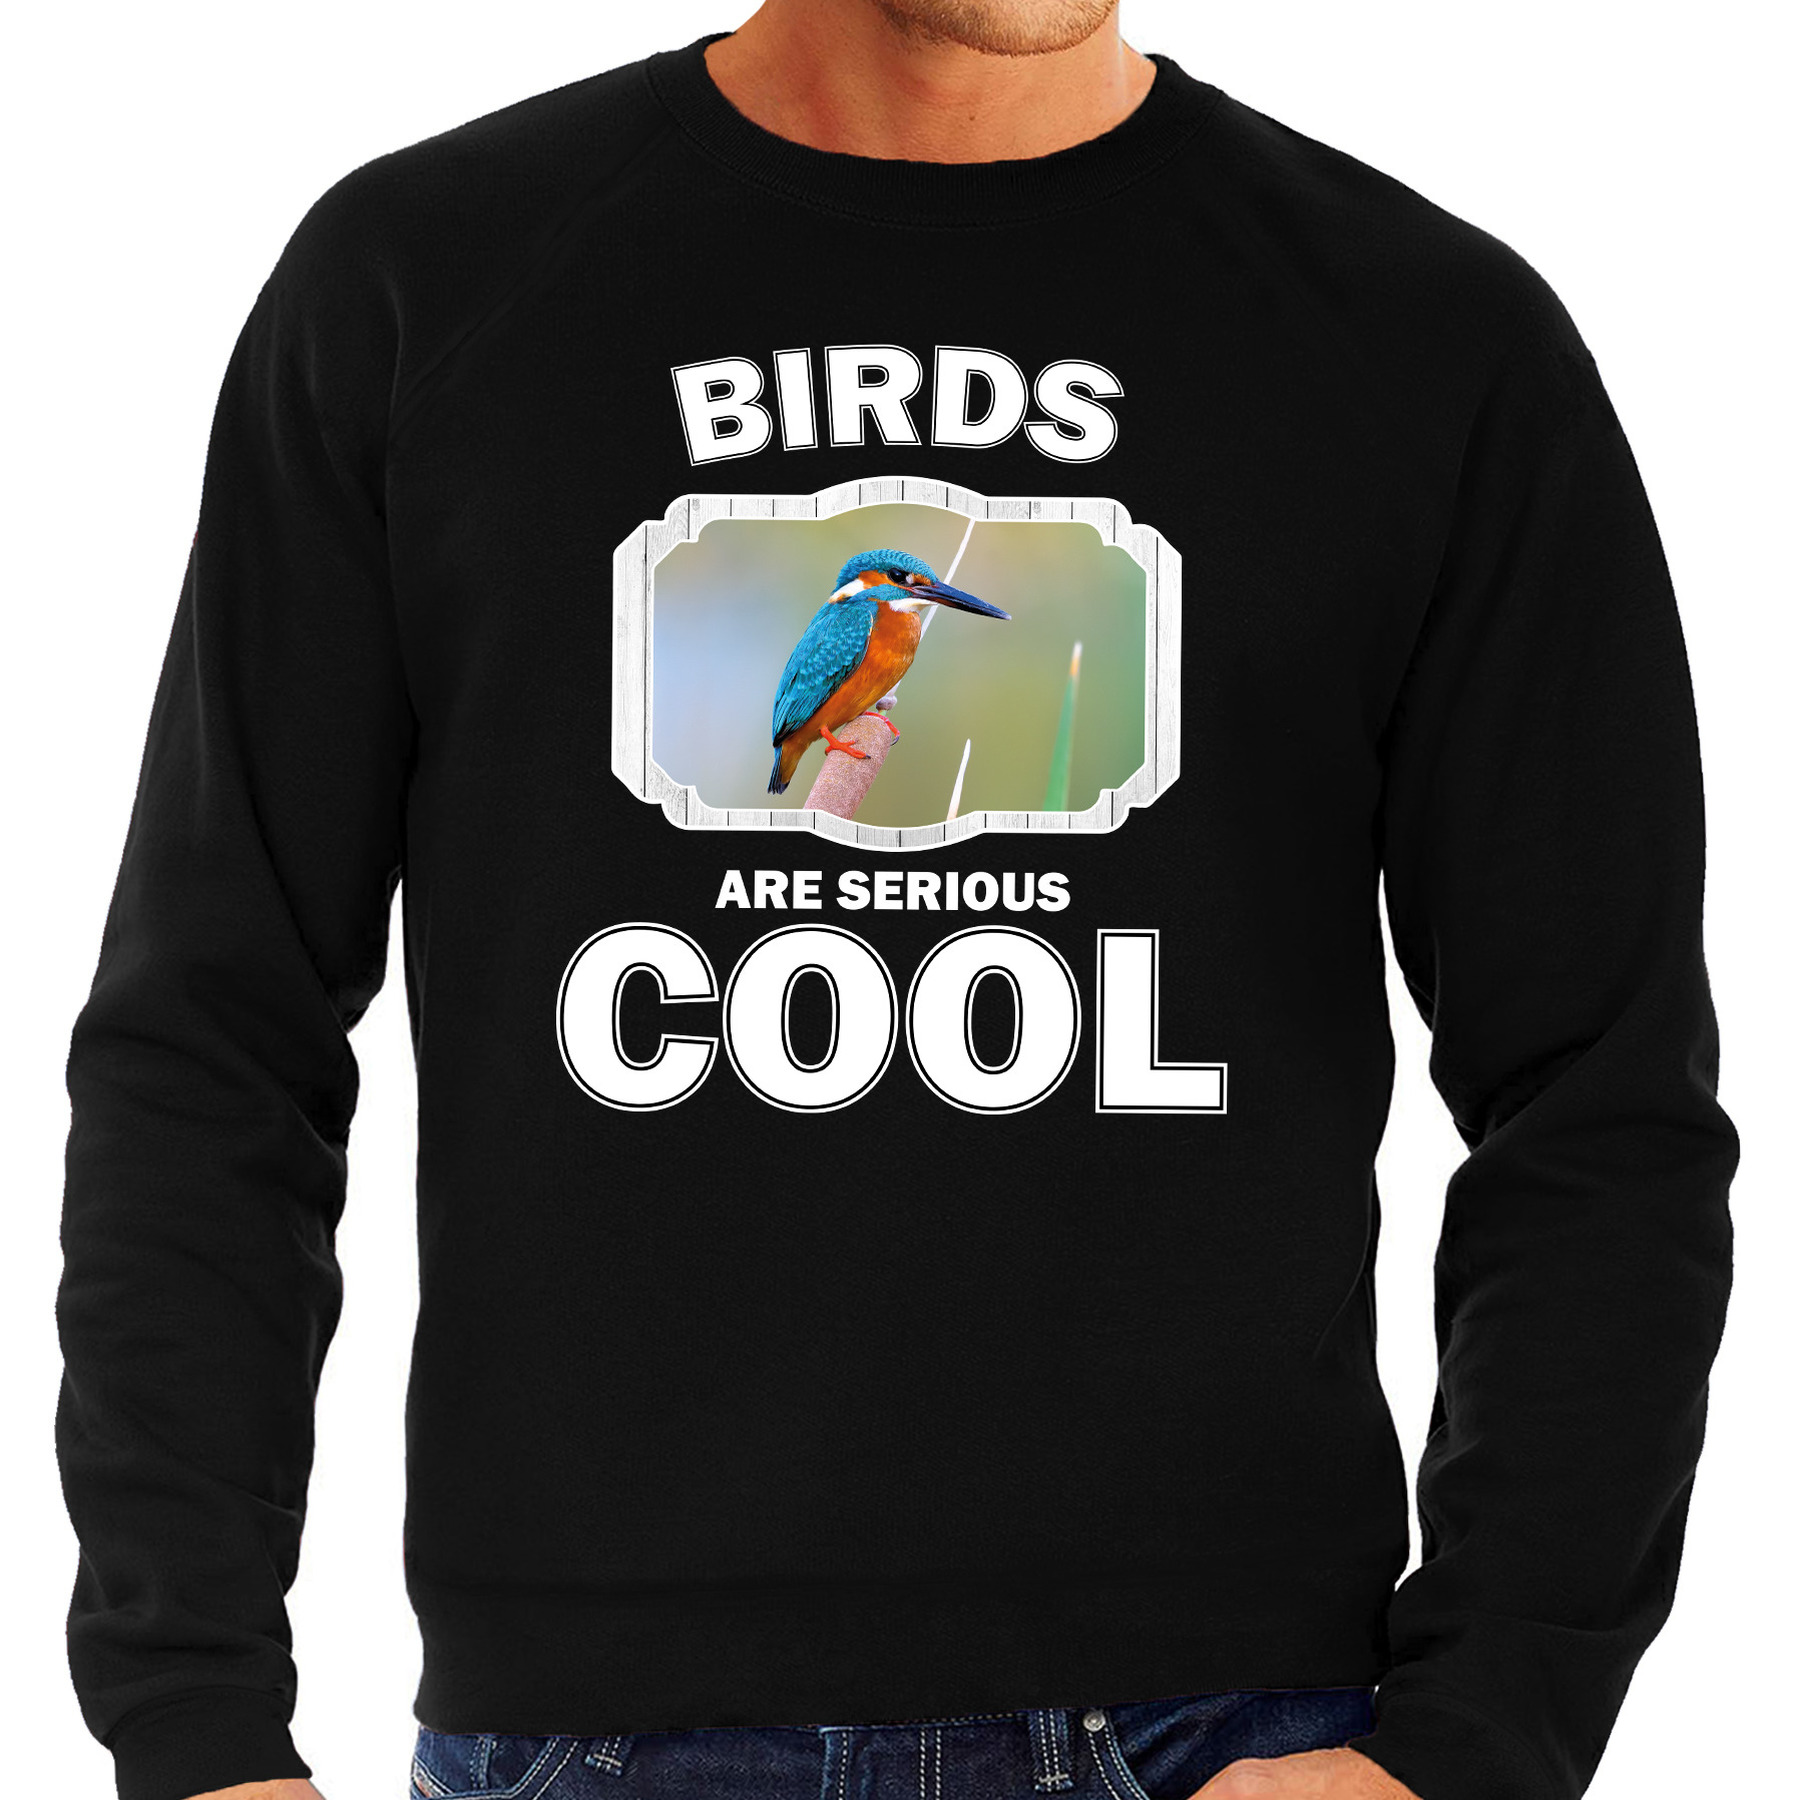 Sweater birds are serious cool zwart heren - vogels/ ijsvogel trui